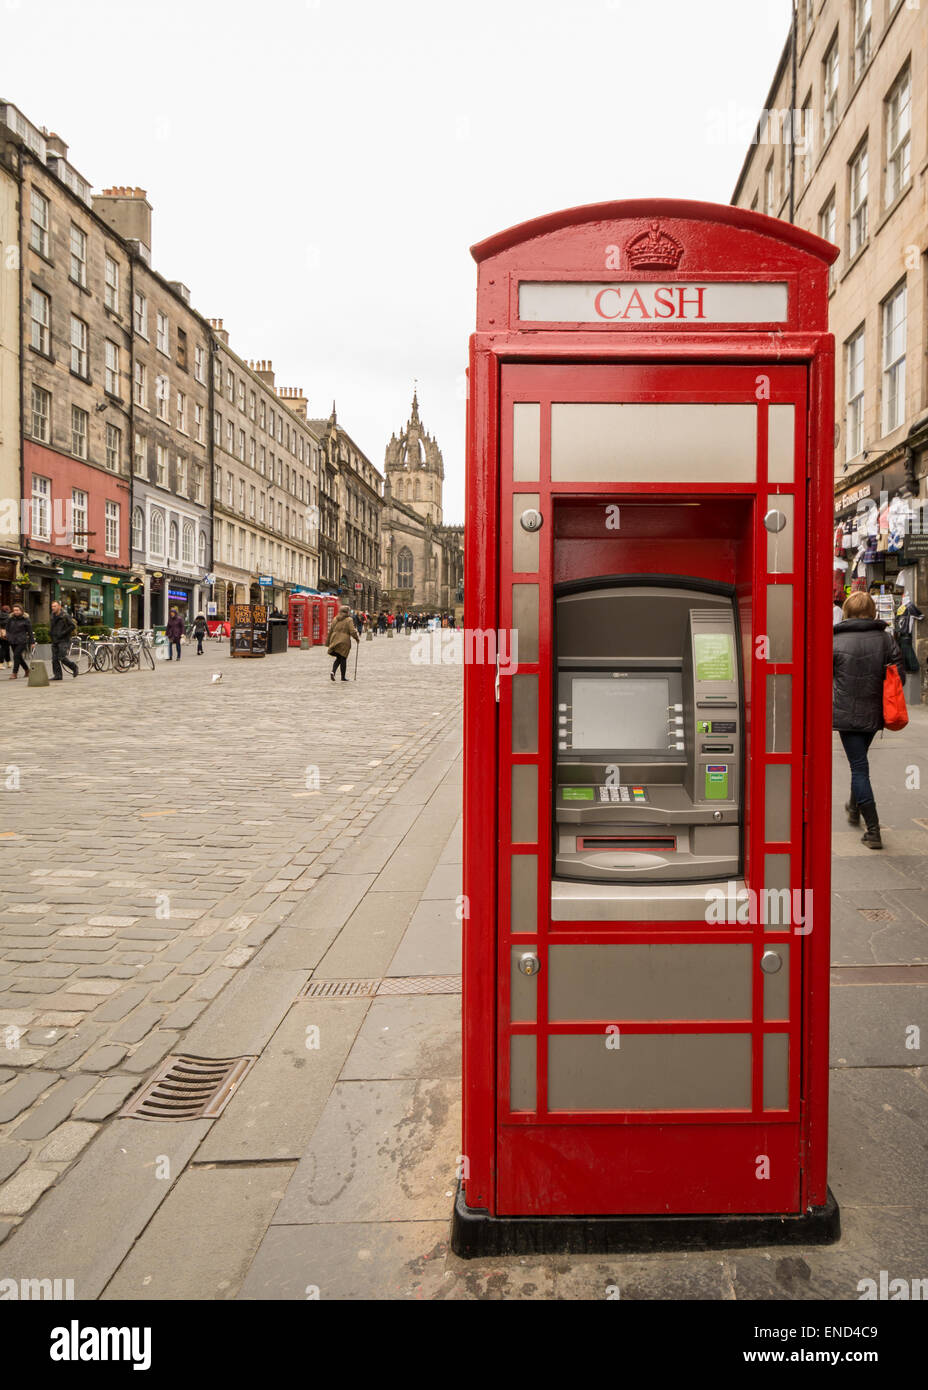 Traditional red telephone box adapted into an electronic cash machine on the Royal Mile, Edinburgh, Scotland, UK - Stock Image